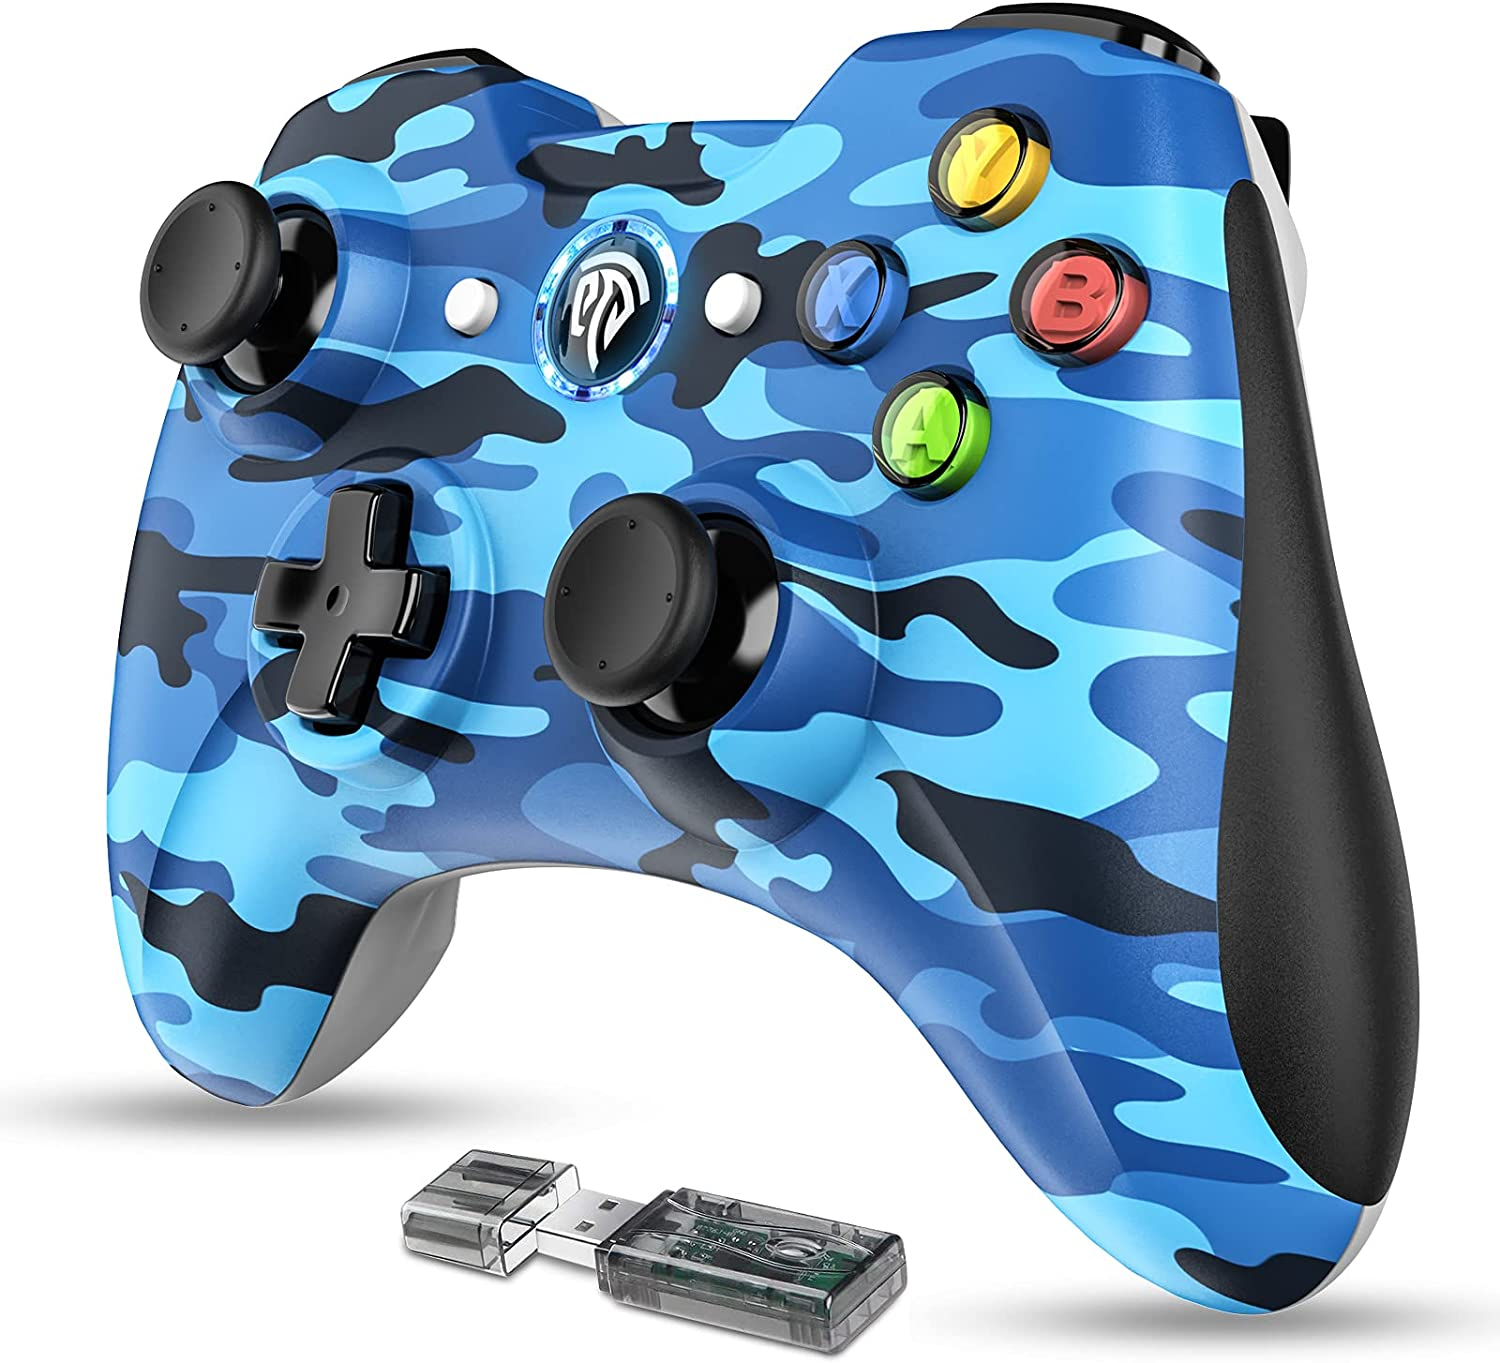 EasySMX Wireless 2.4g Gaming Controller Support for PC (Windows XP/7/8/8.1/10) and PS3, Android, Vista, TV Box Portable Gaming Joystick Gamepad-Blue